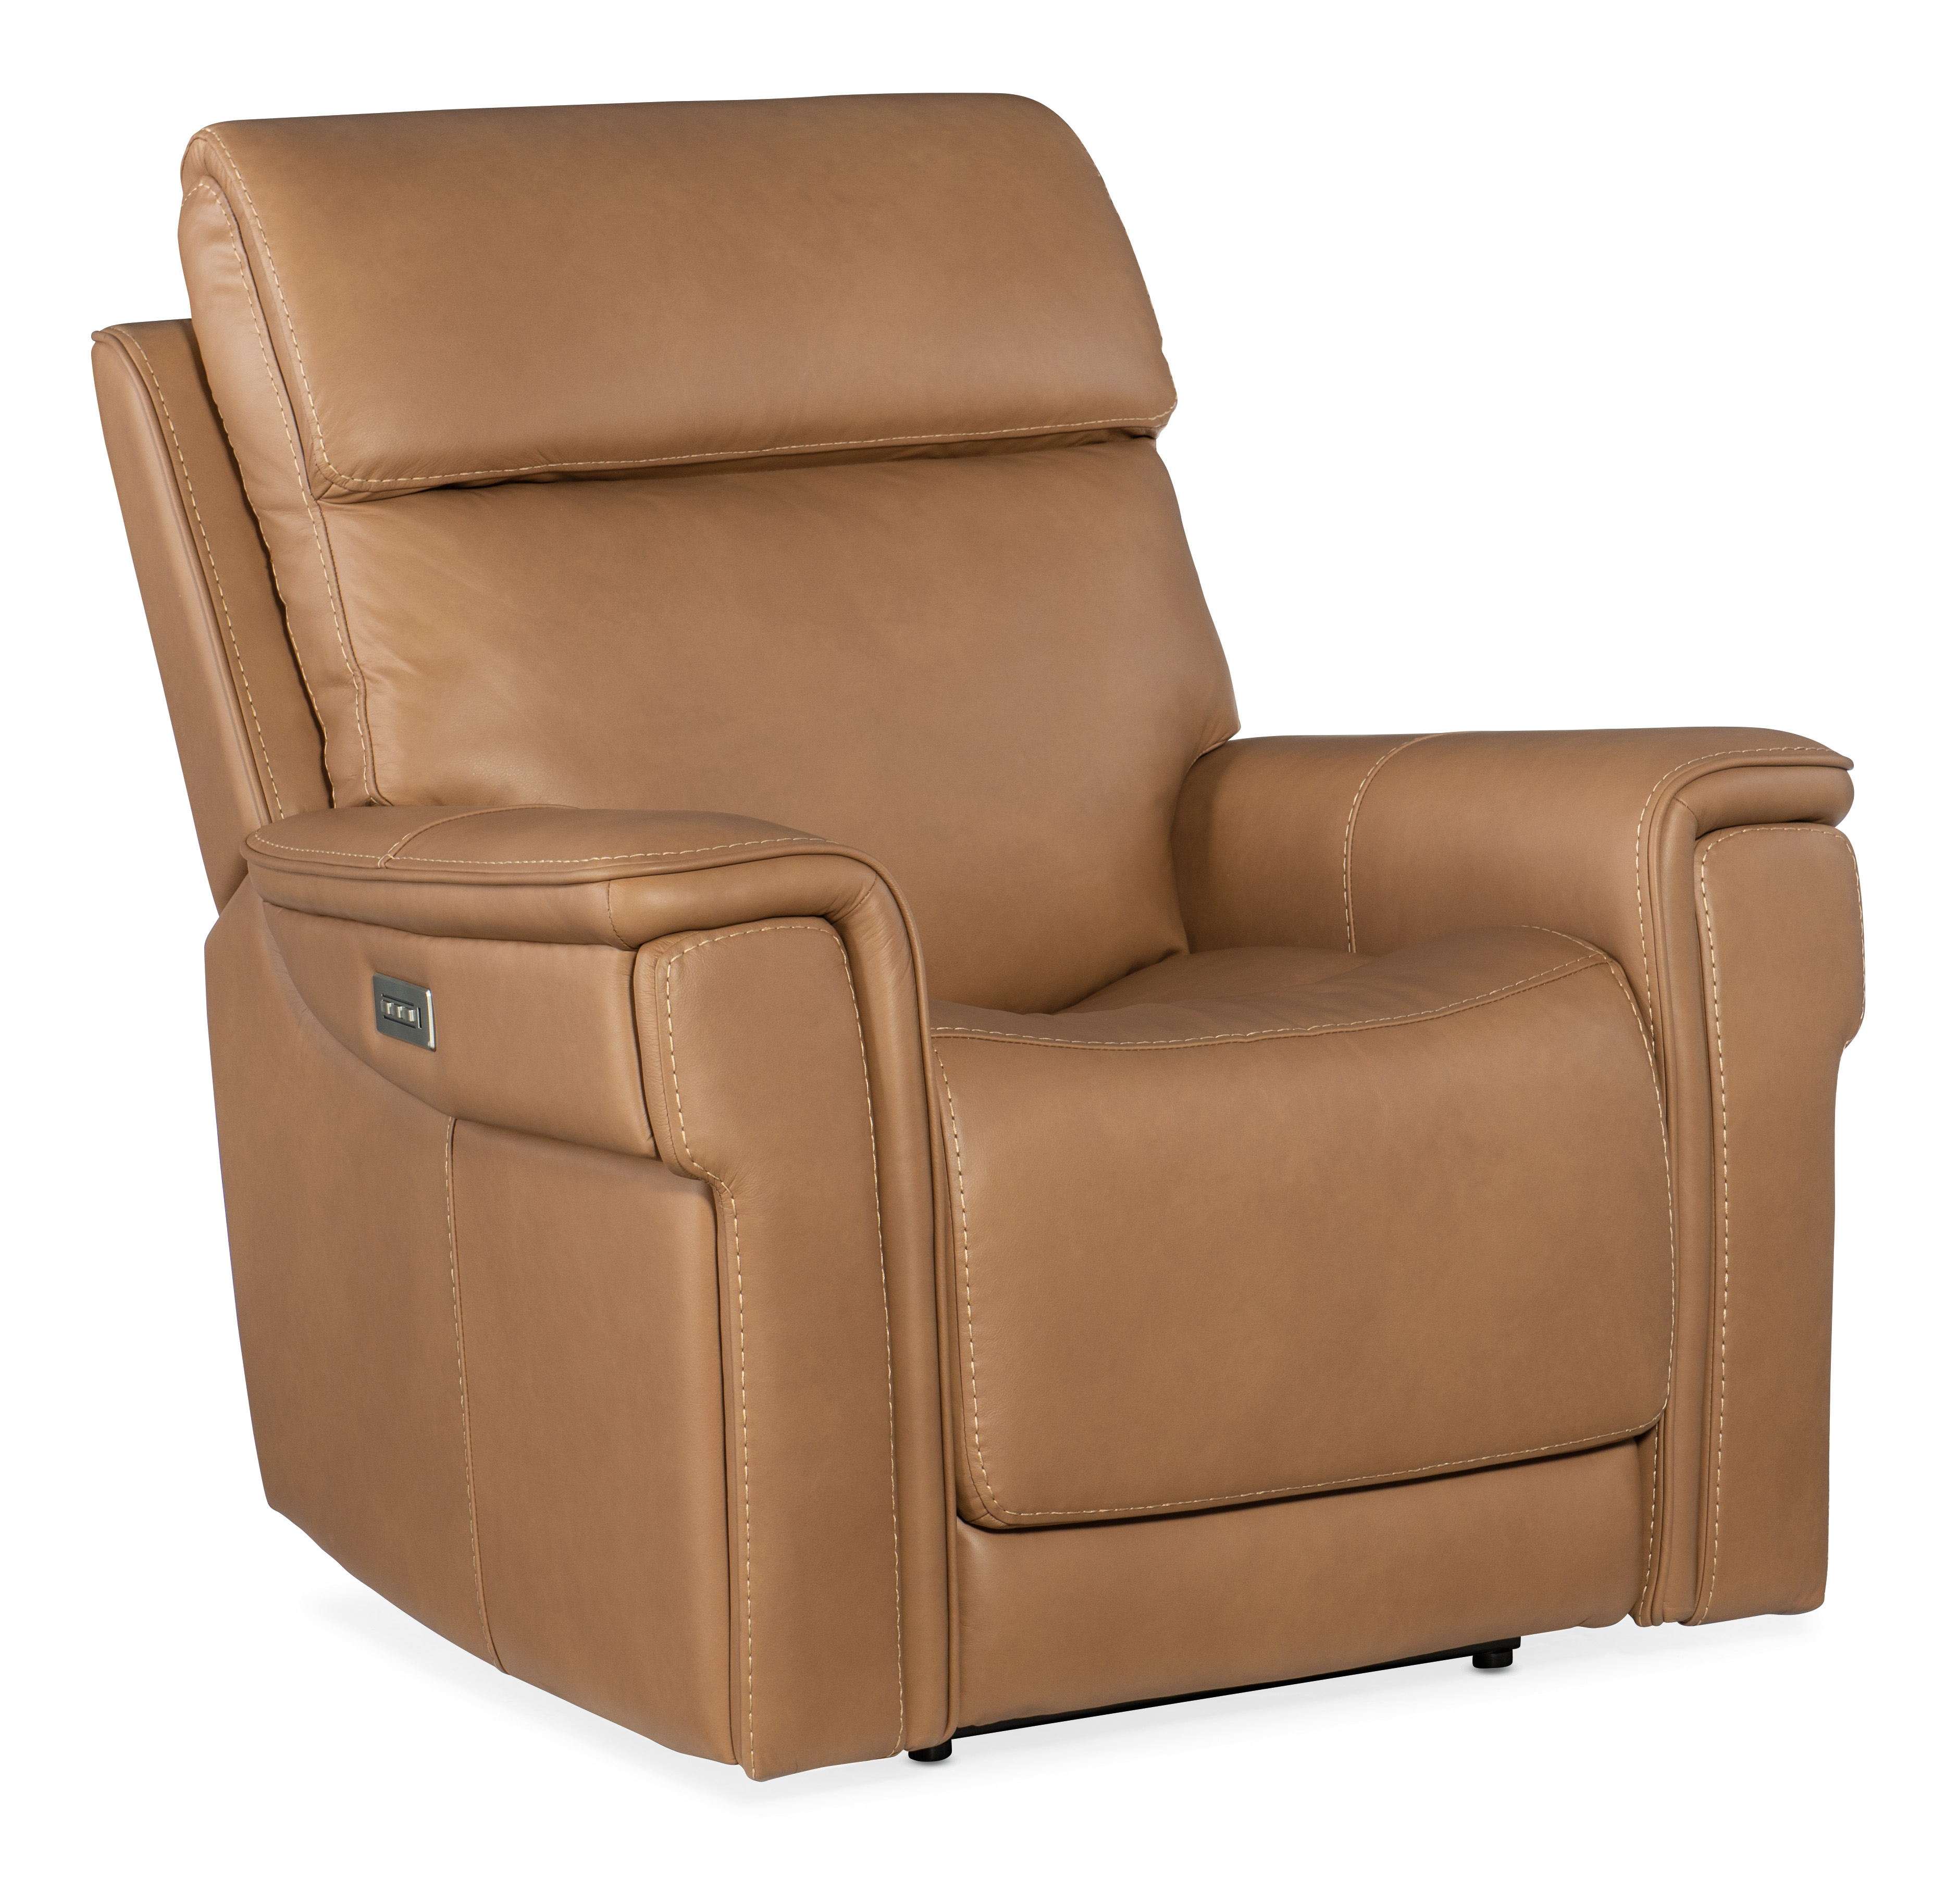 Lyra Zero Gravity Power Recliner by Hooker Furniture at Powell's Furniture and Mattress